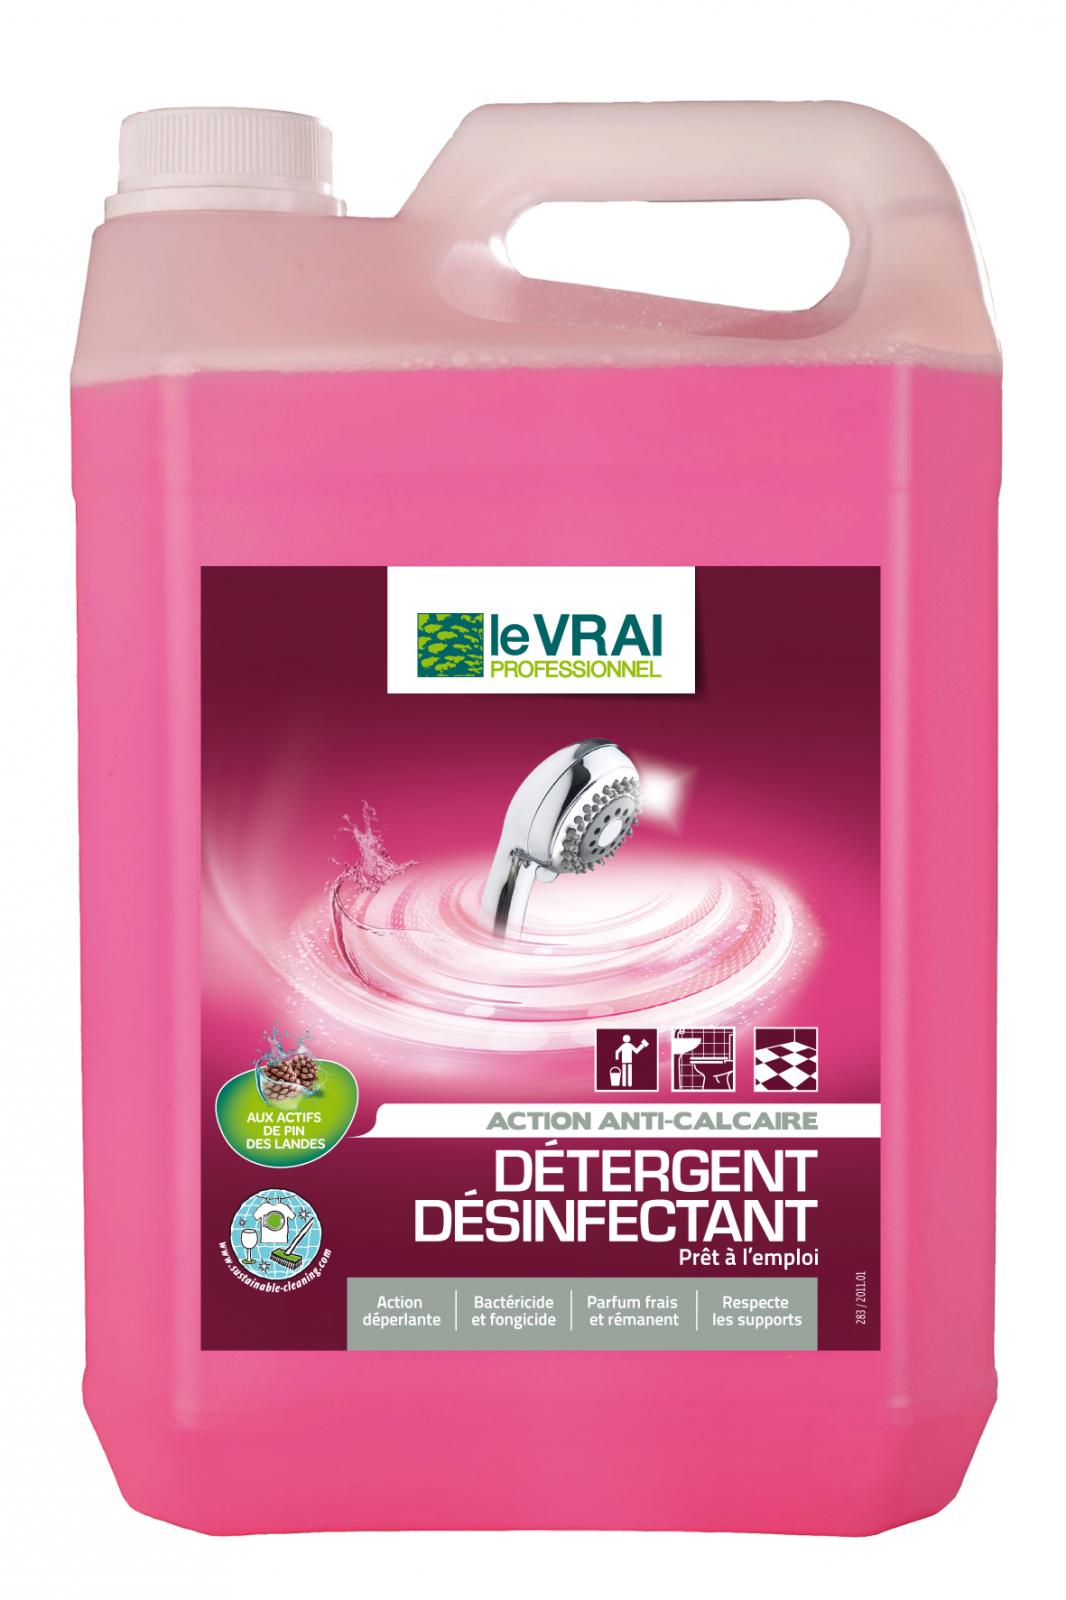 detergent desinfectant sanitaire 5 en 1 le vrai 5 litres. Black Bedroom Furniture Sets. Home Design Ideas